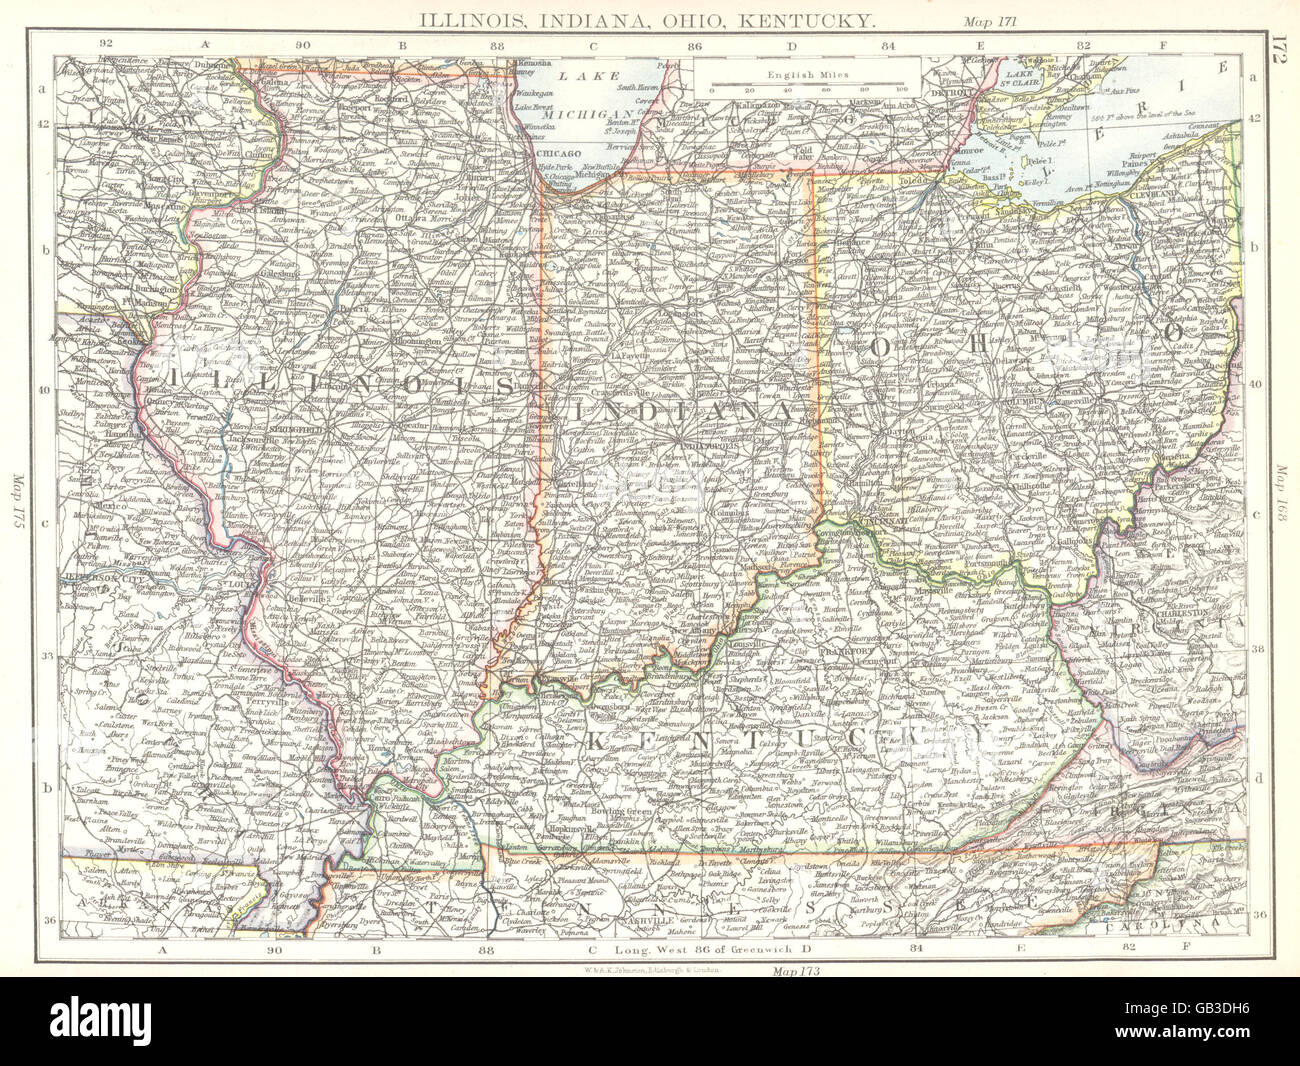 USA MID WEST Illinois Indiana Ohio Kentucky Antique Map - Indiana on map of usa